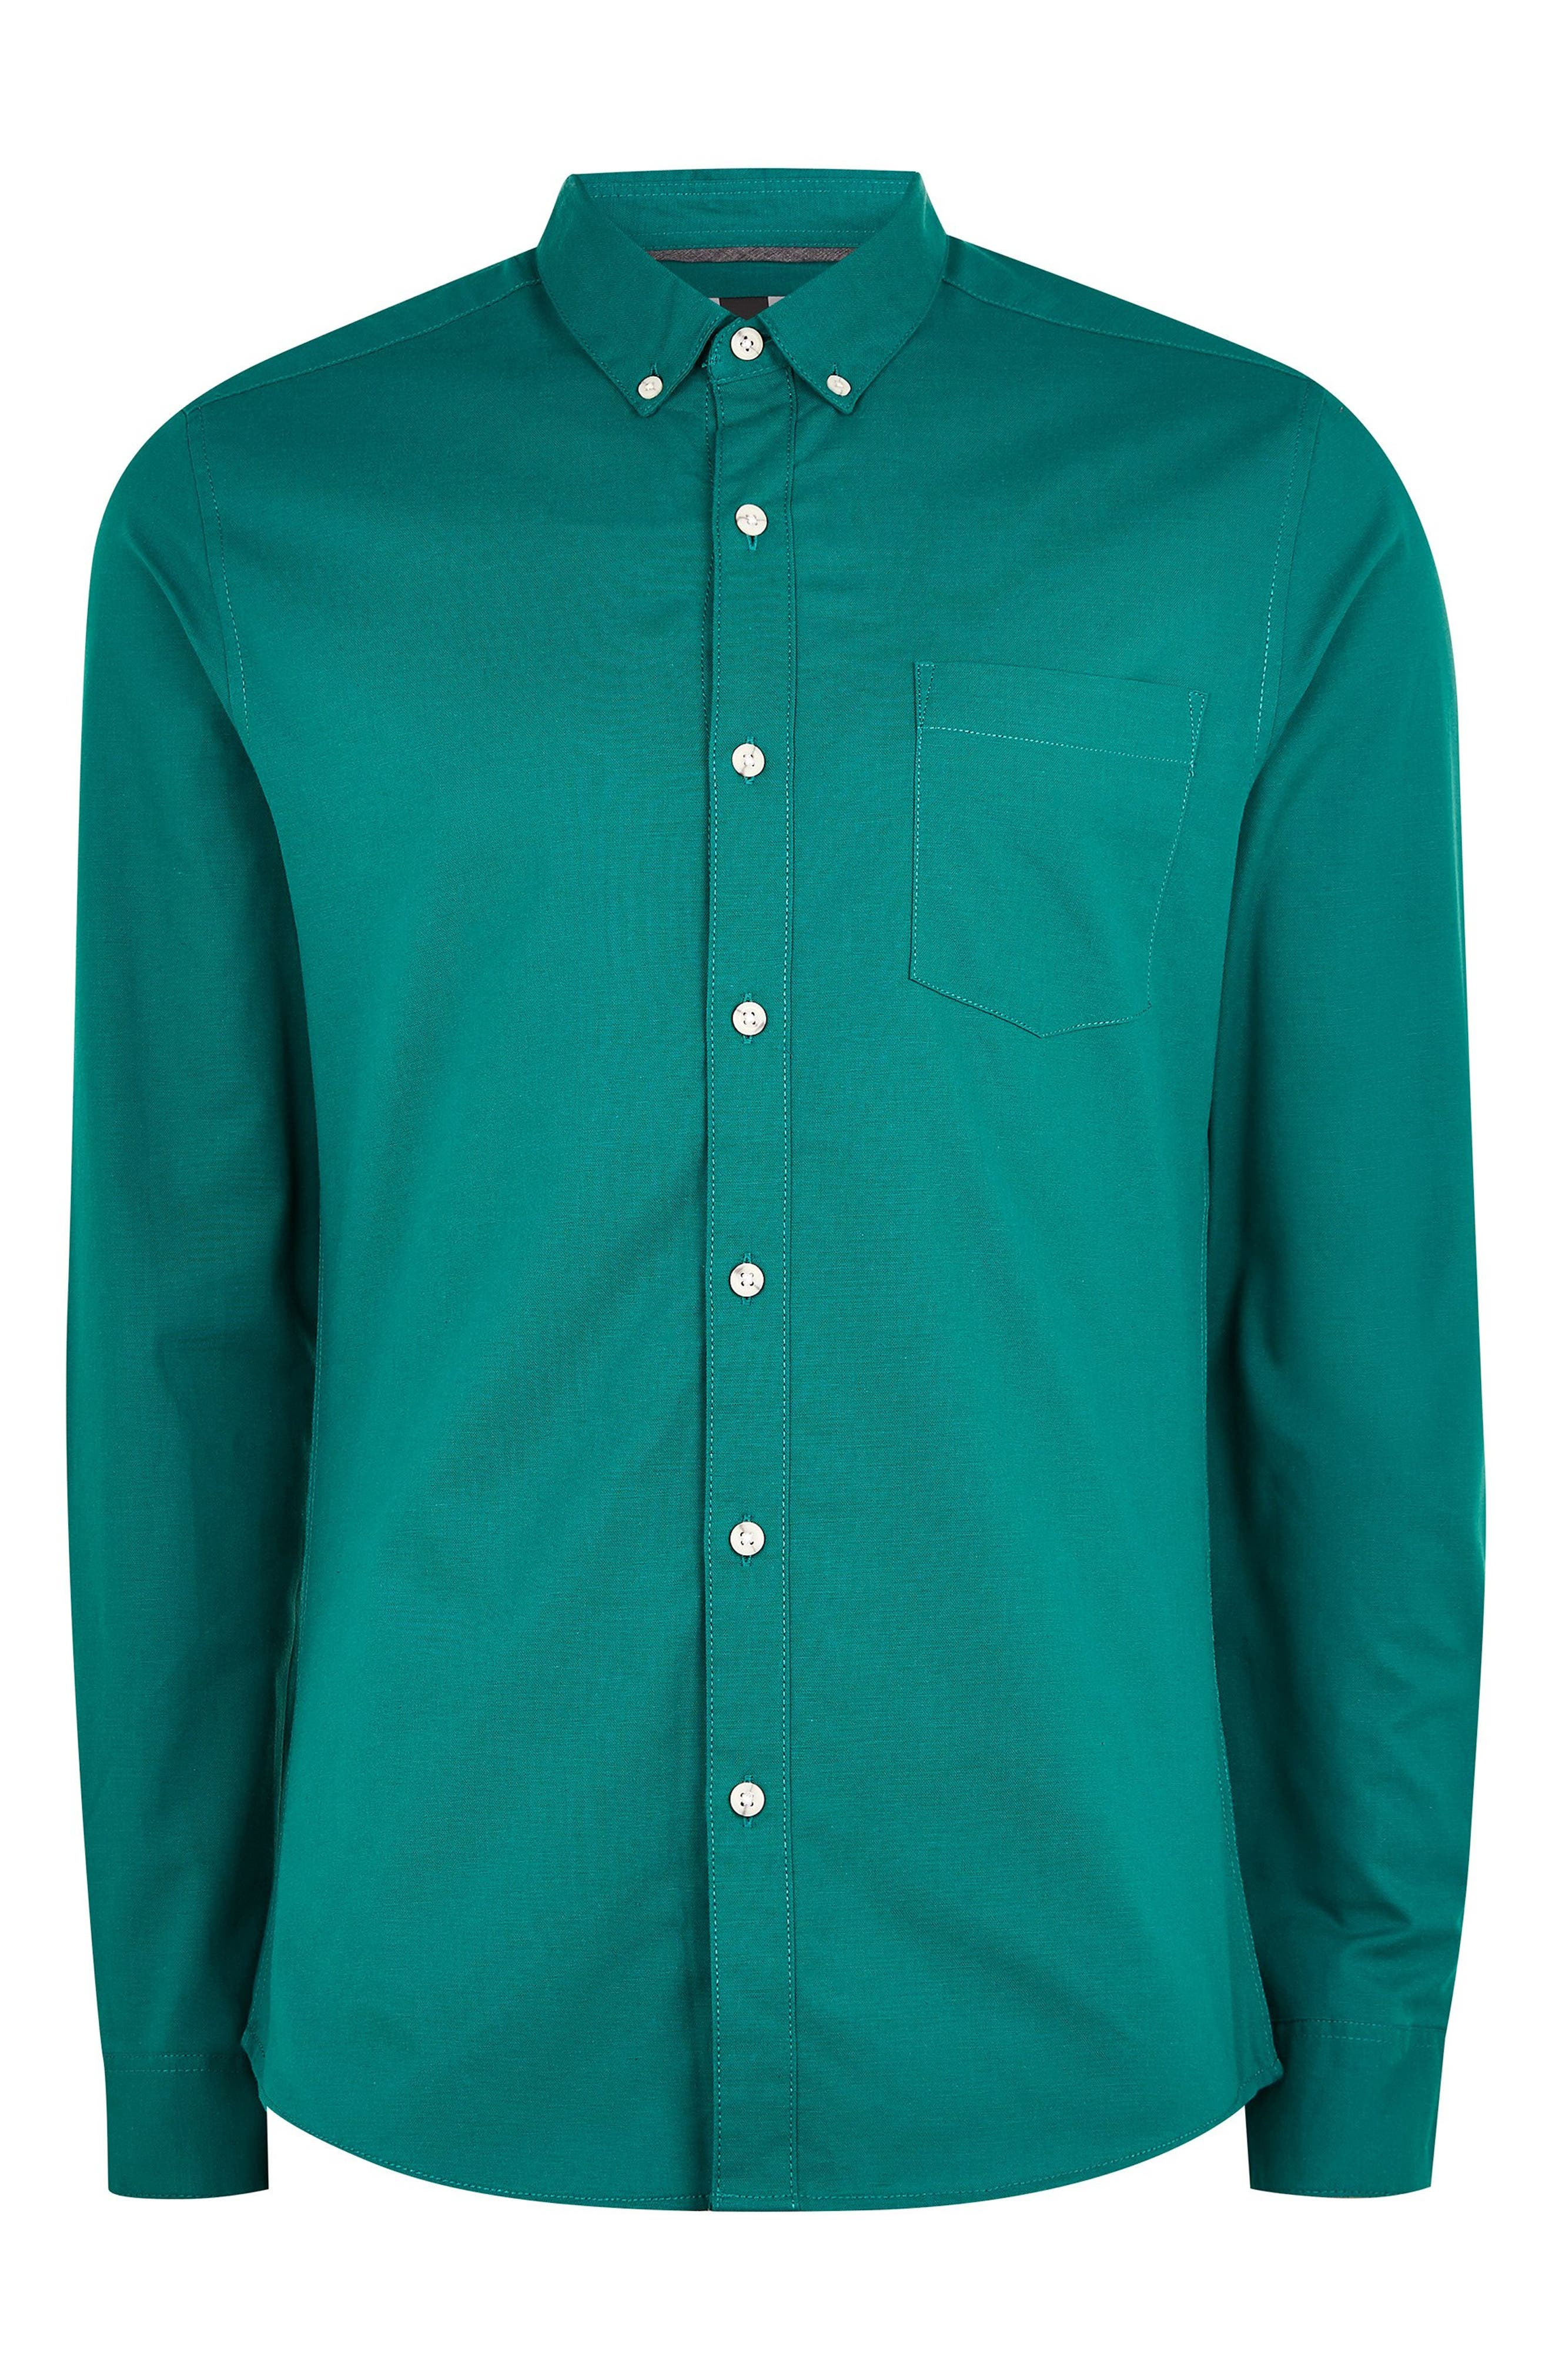 Classic Fit Oxford Shirt,                             Alternate thumbnail 4, color,                             BLUE